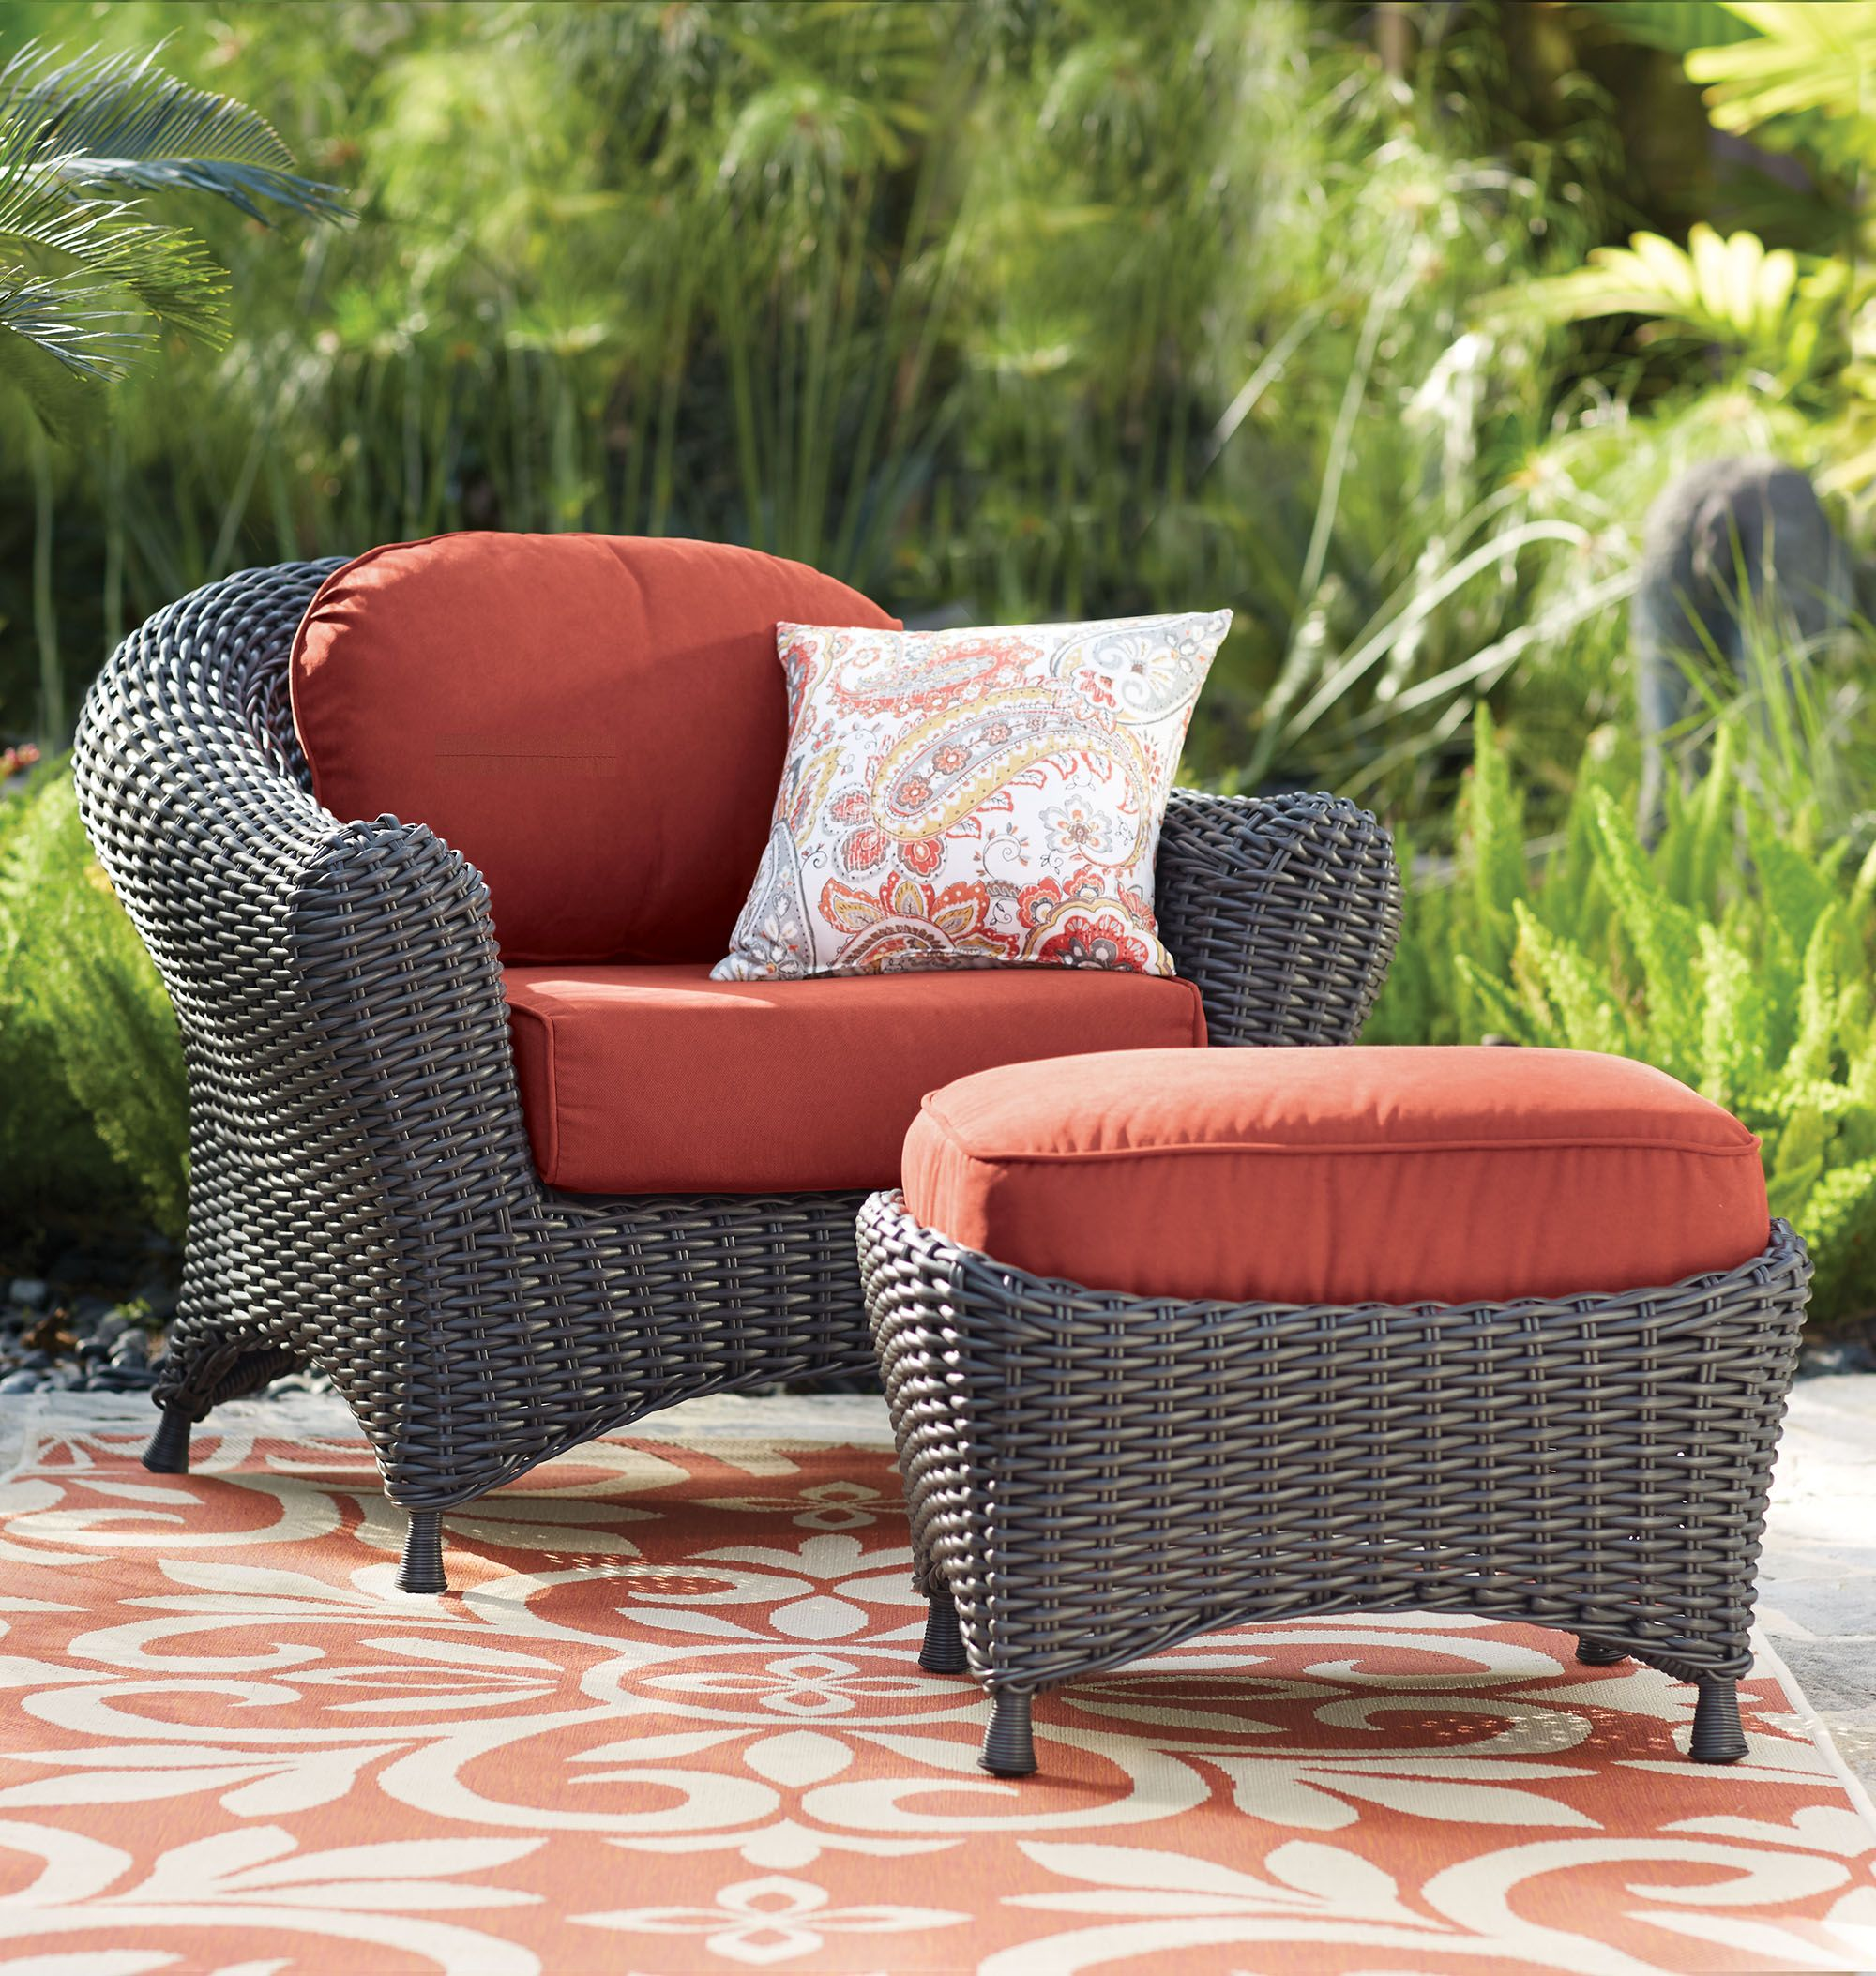 Martha Stewart Living Lake Adela Two Piece Seating Set Outdoor Seating Sets Patio Sets Patio Lounge Chairs Outdoor Furniture Sets Chair And Ottoman Set